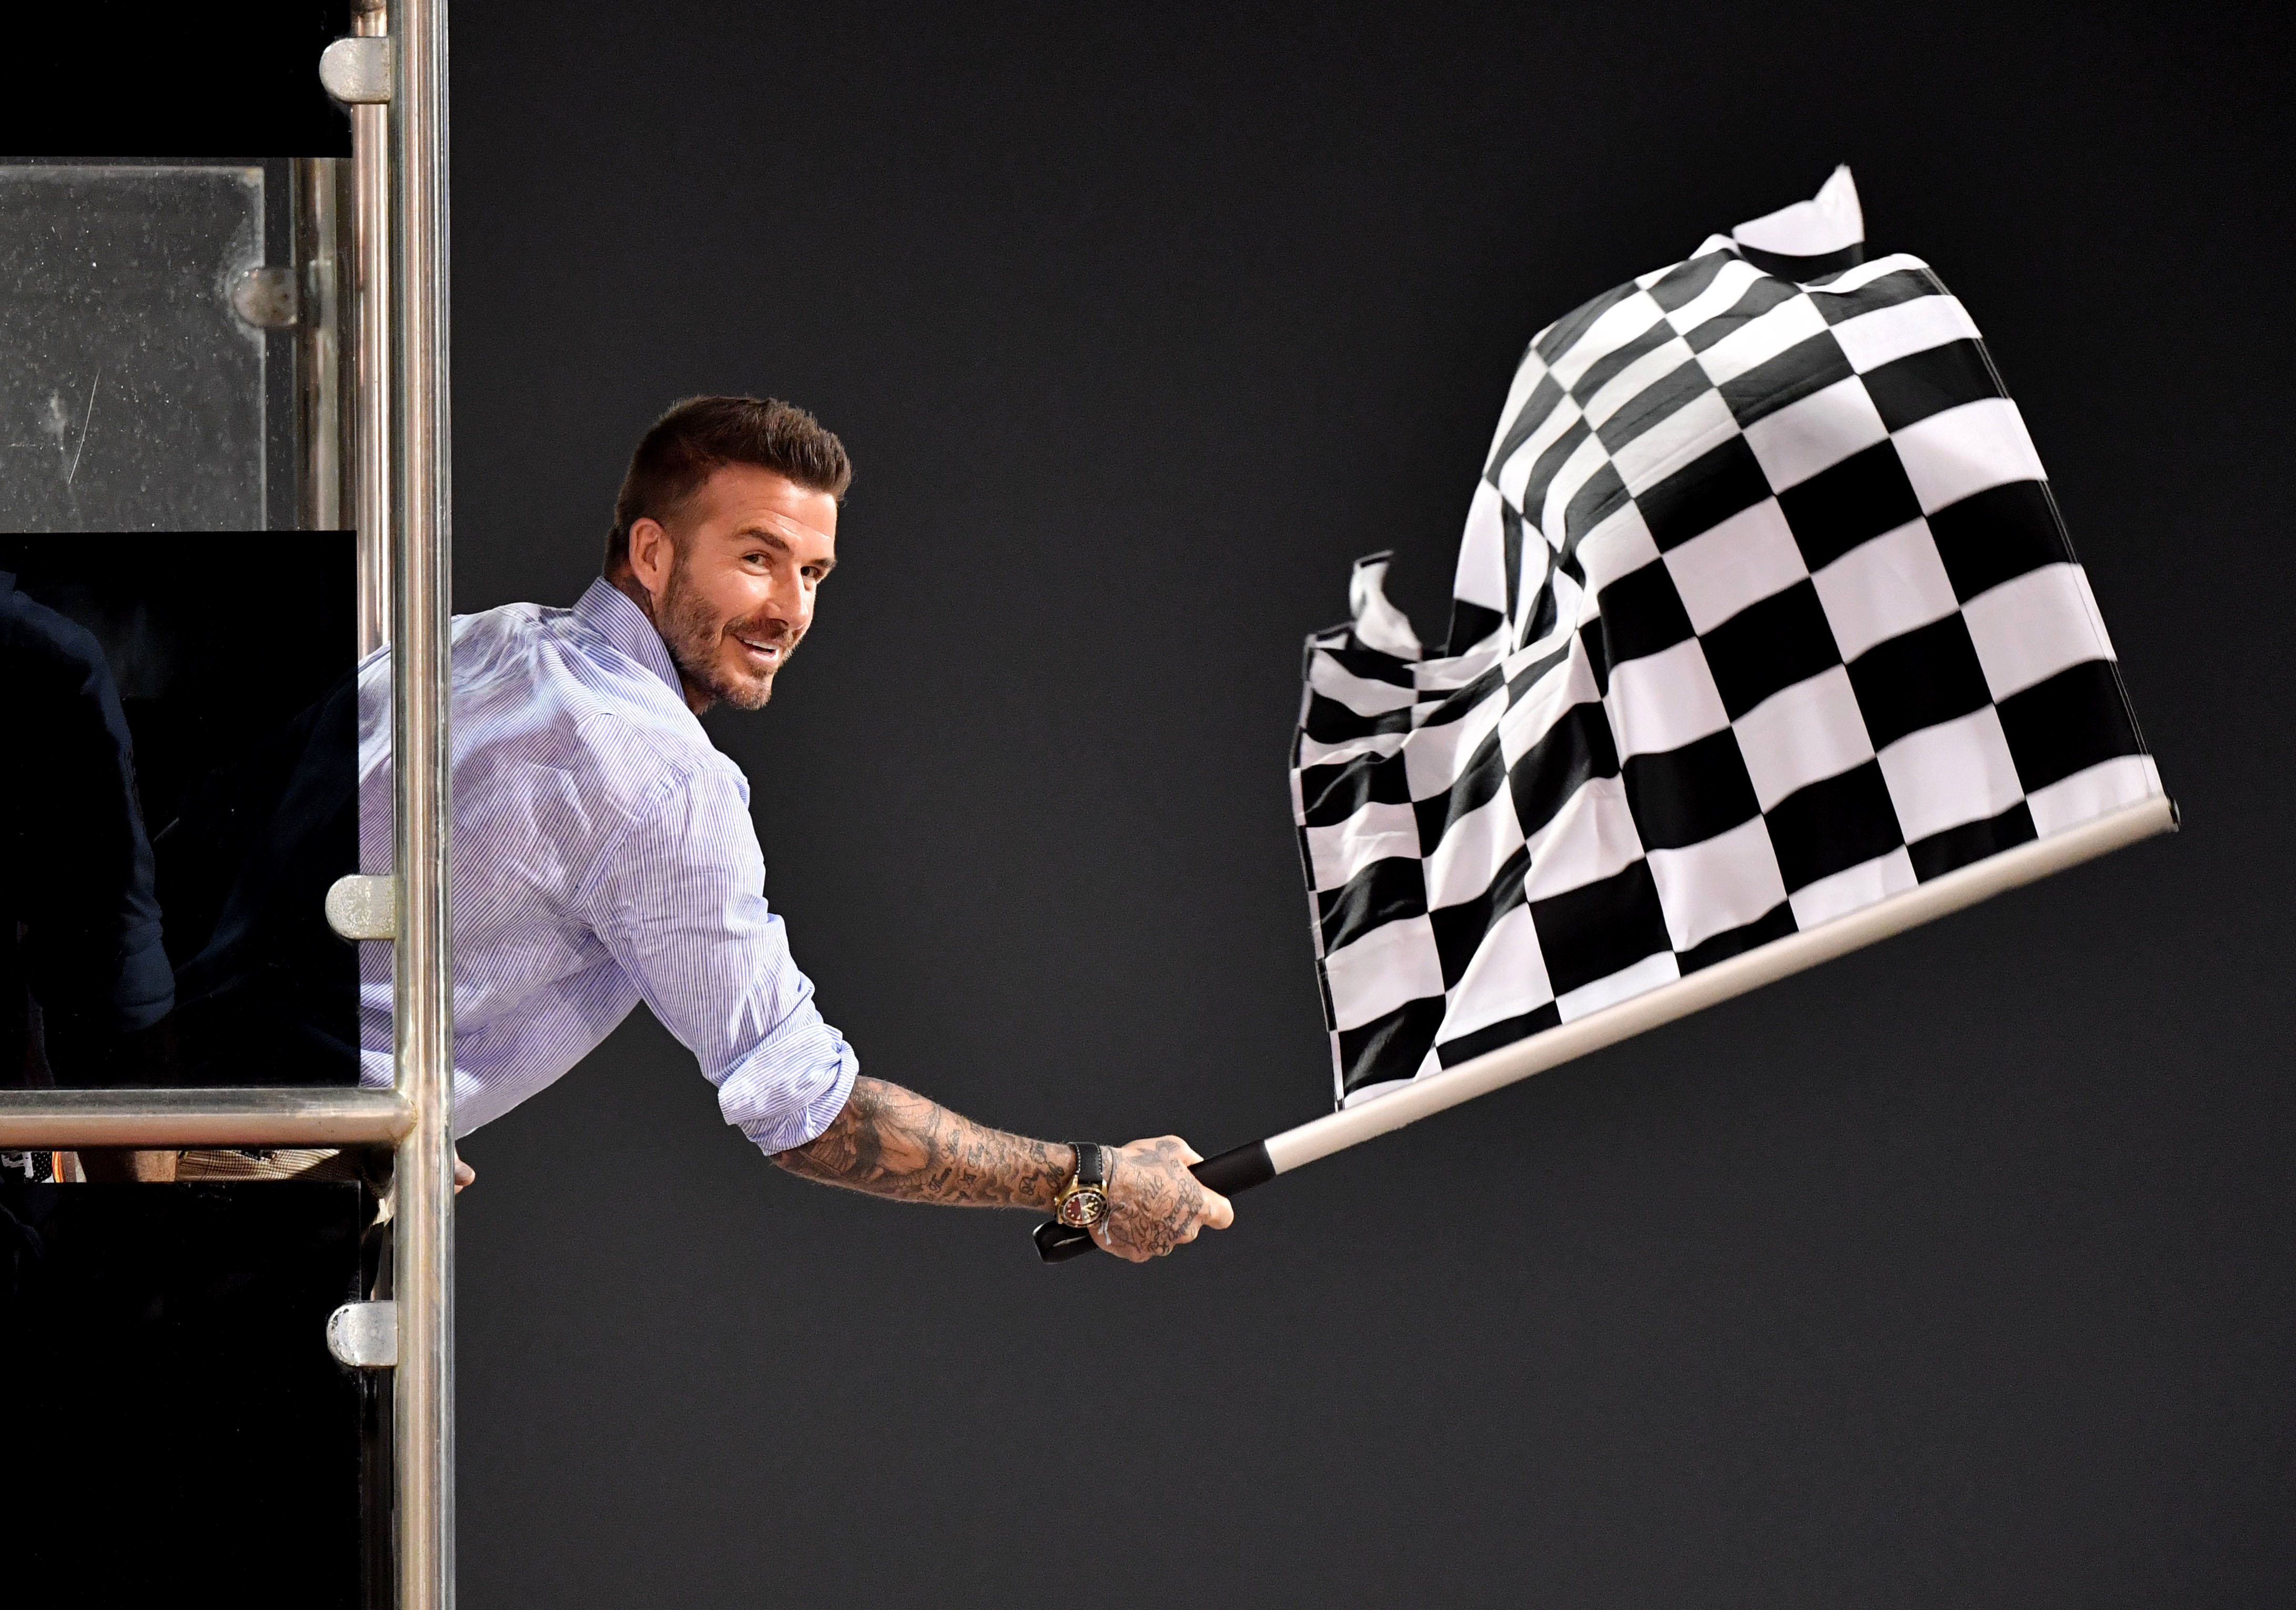 David Beckham waves the checkered flag during the Formula One Bahrain Grand Prix in Manama on March 31, 2019.